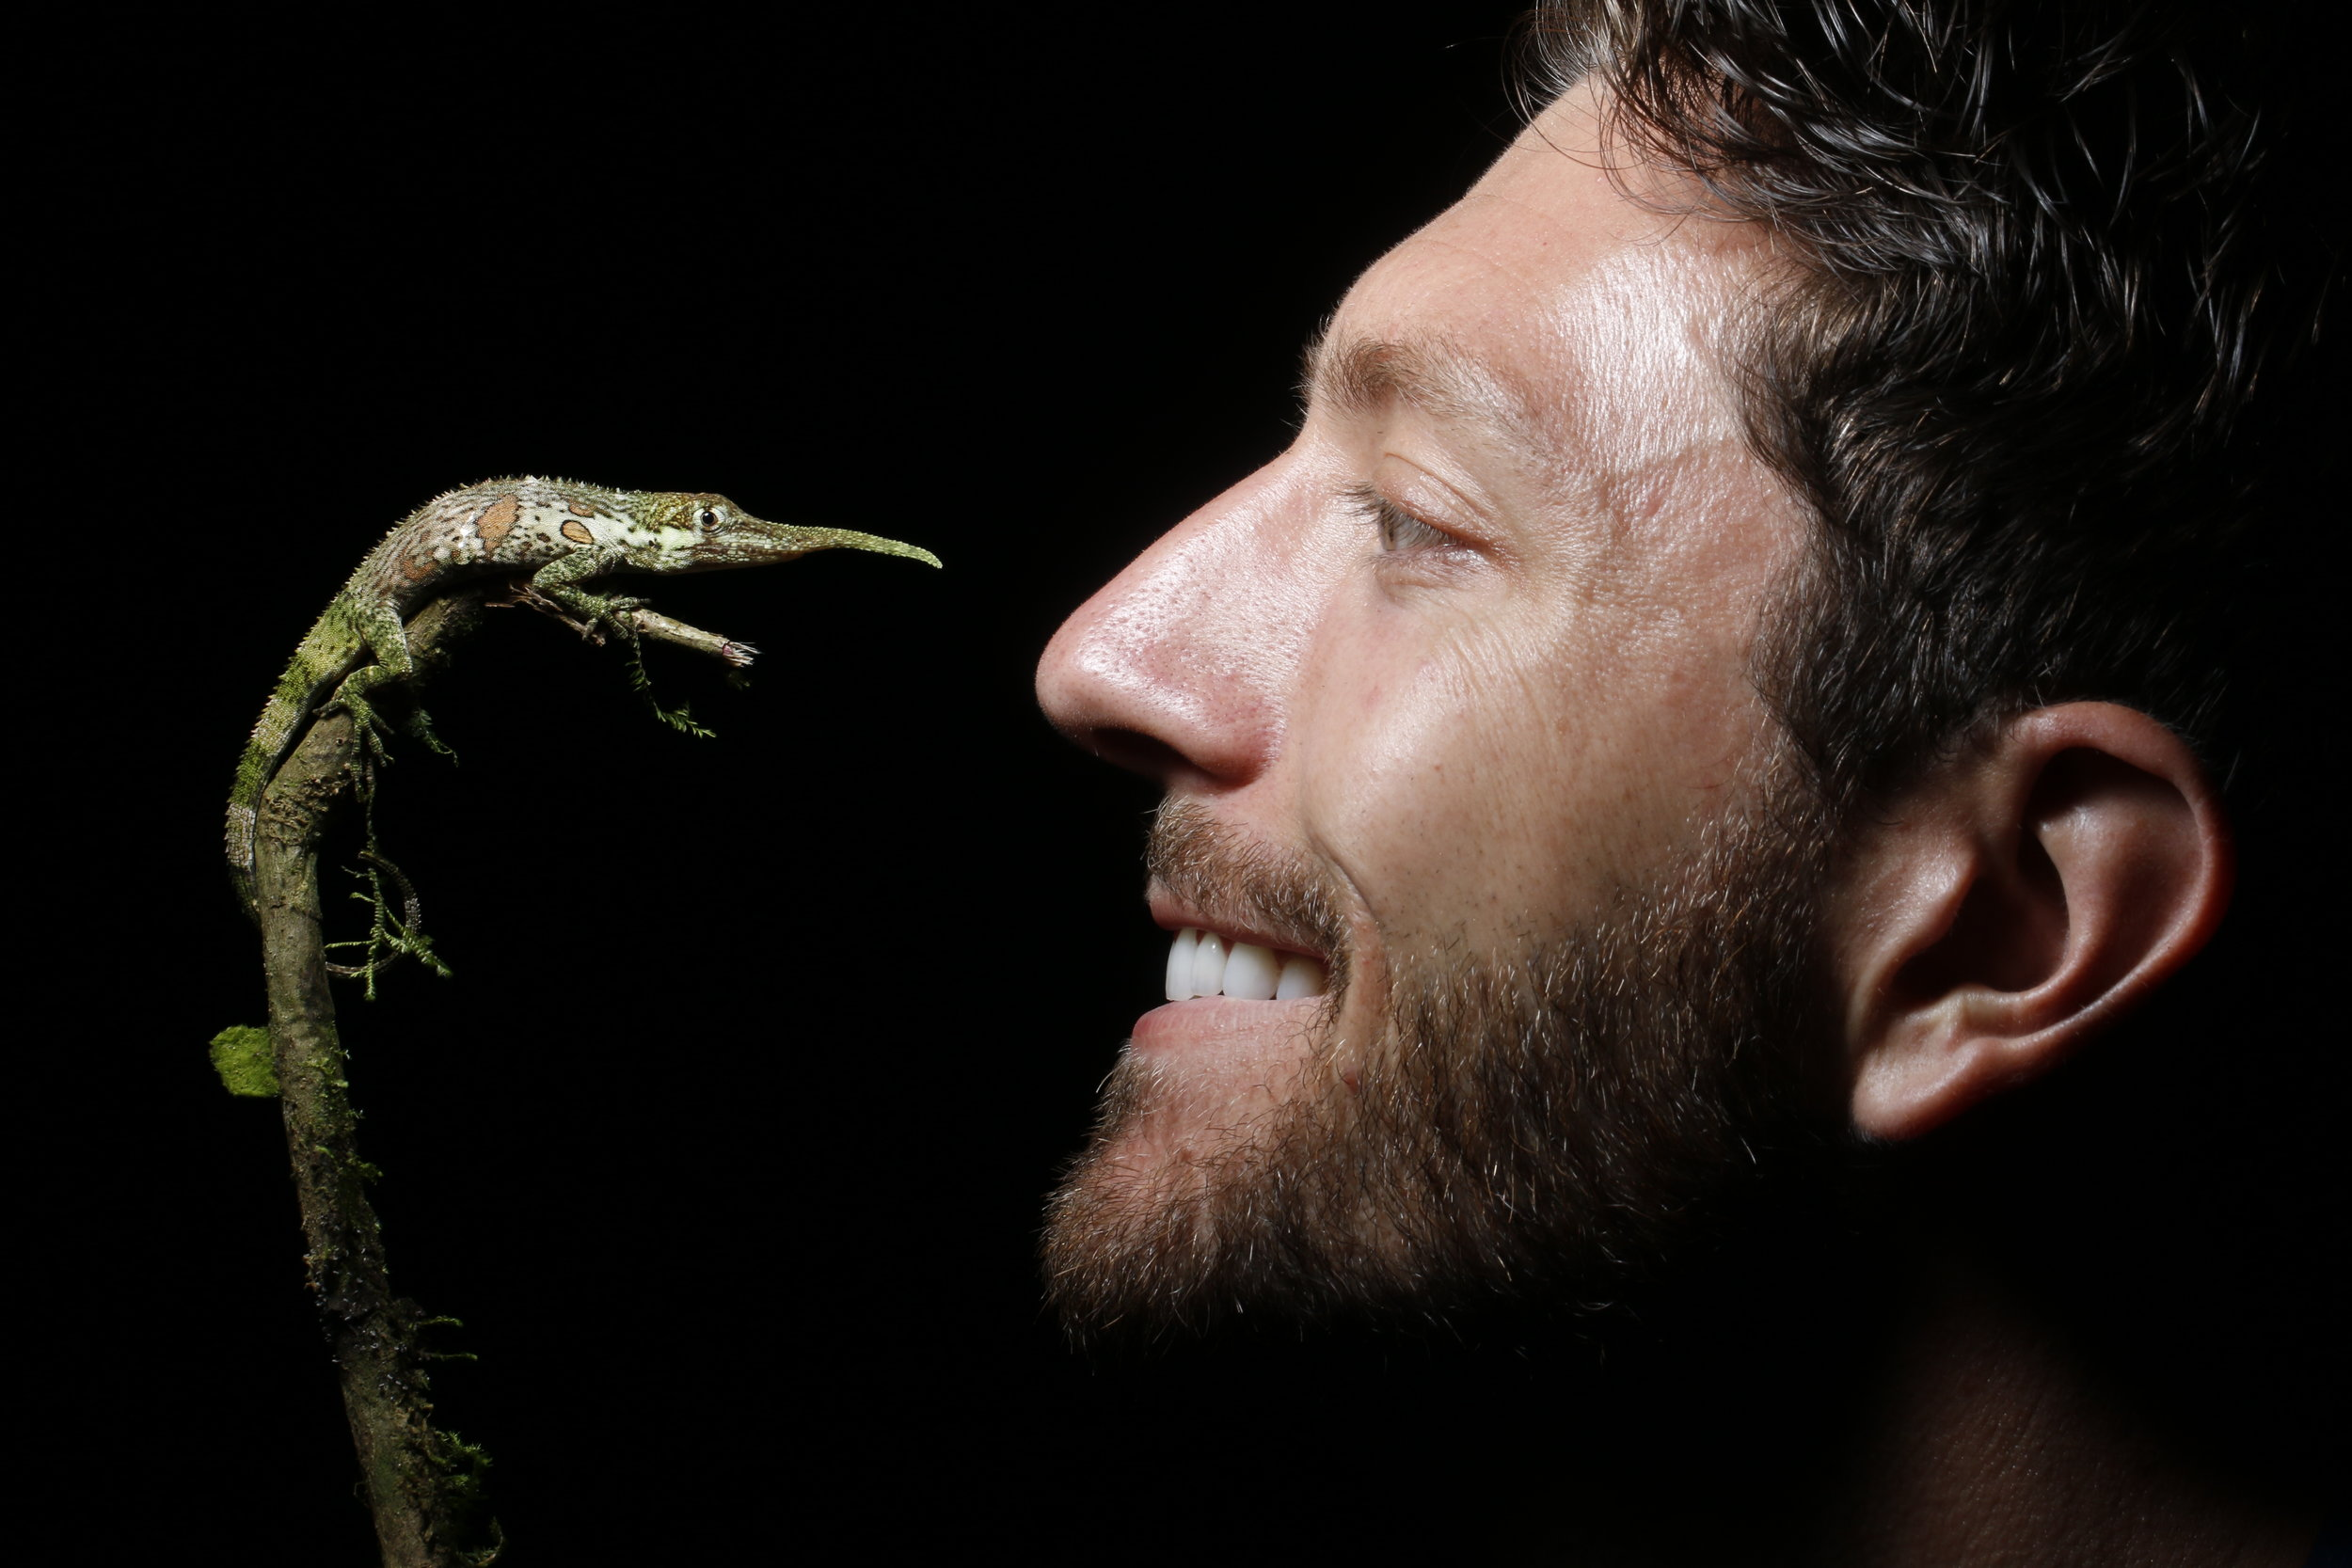 Face to face with the incredible Pinocchio lizard. Such an amazing opportunity to see this rare animal!